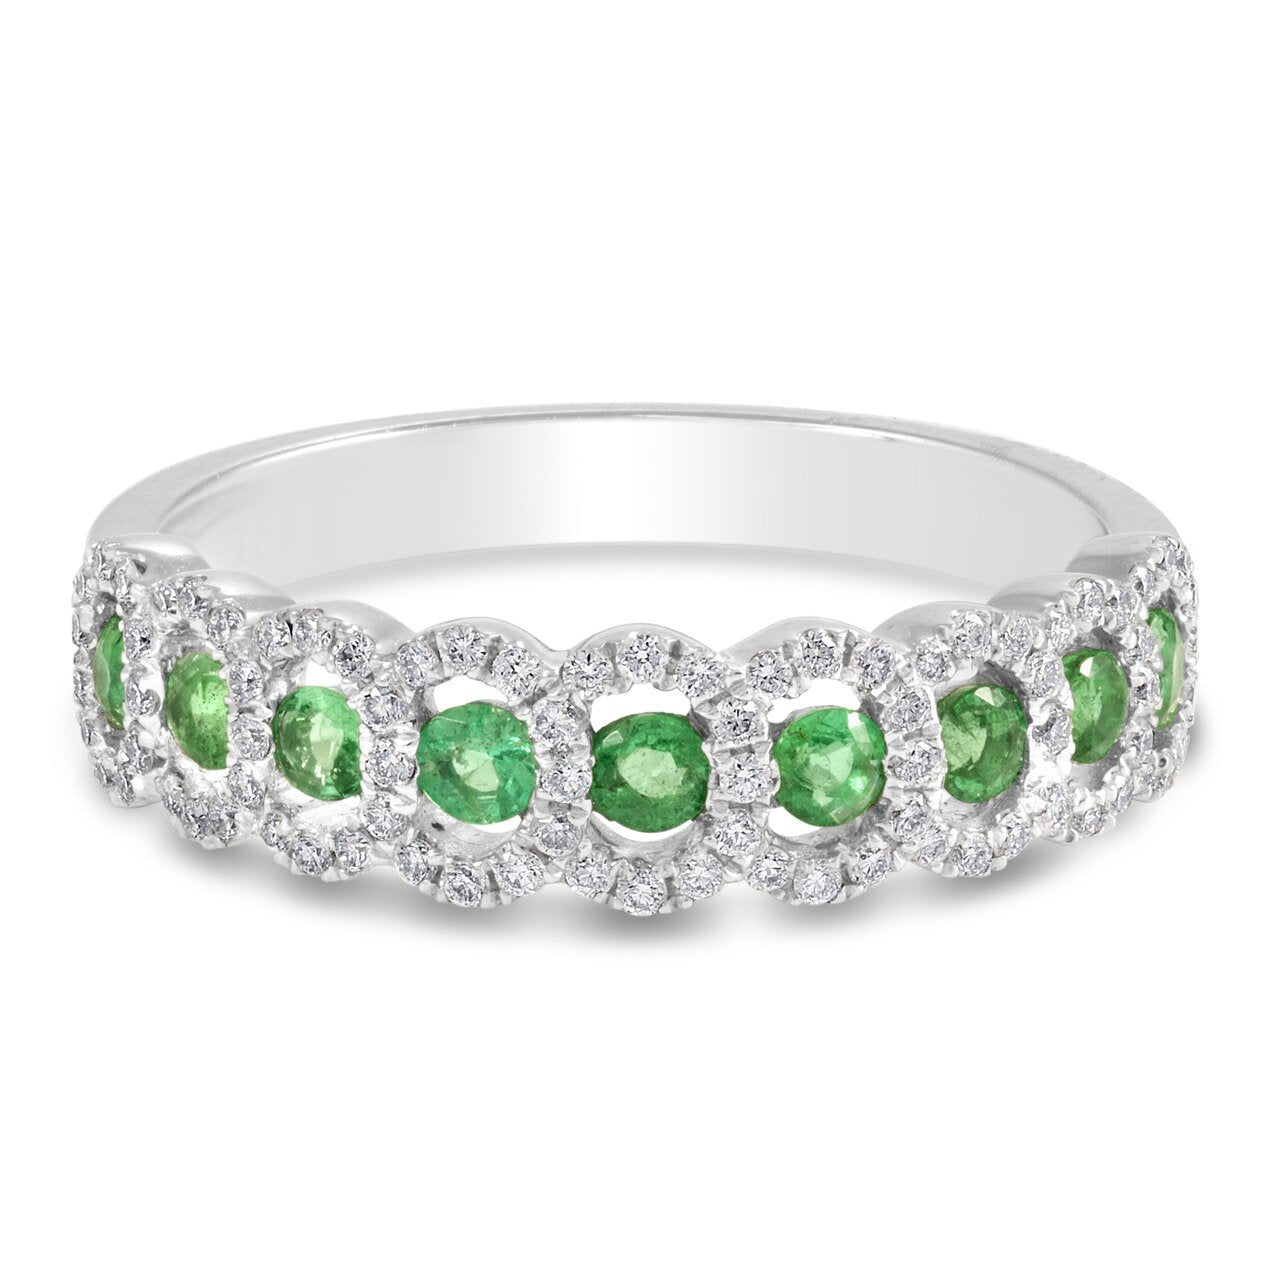 White Gold Oval Shape Halo With Round Emeralds